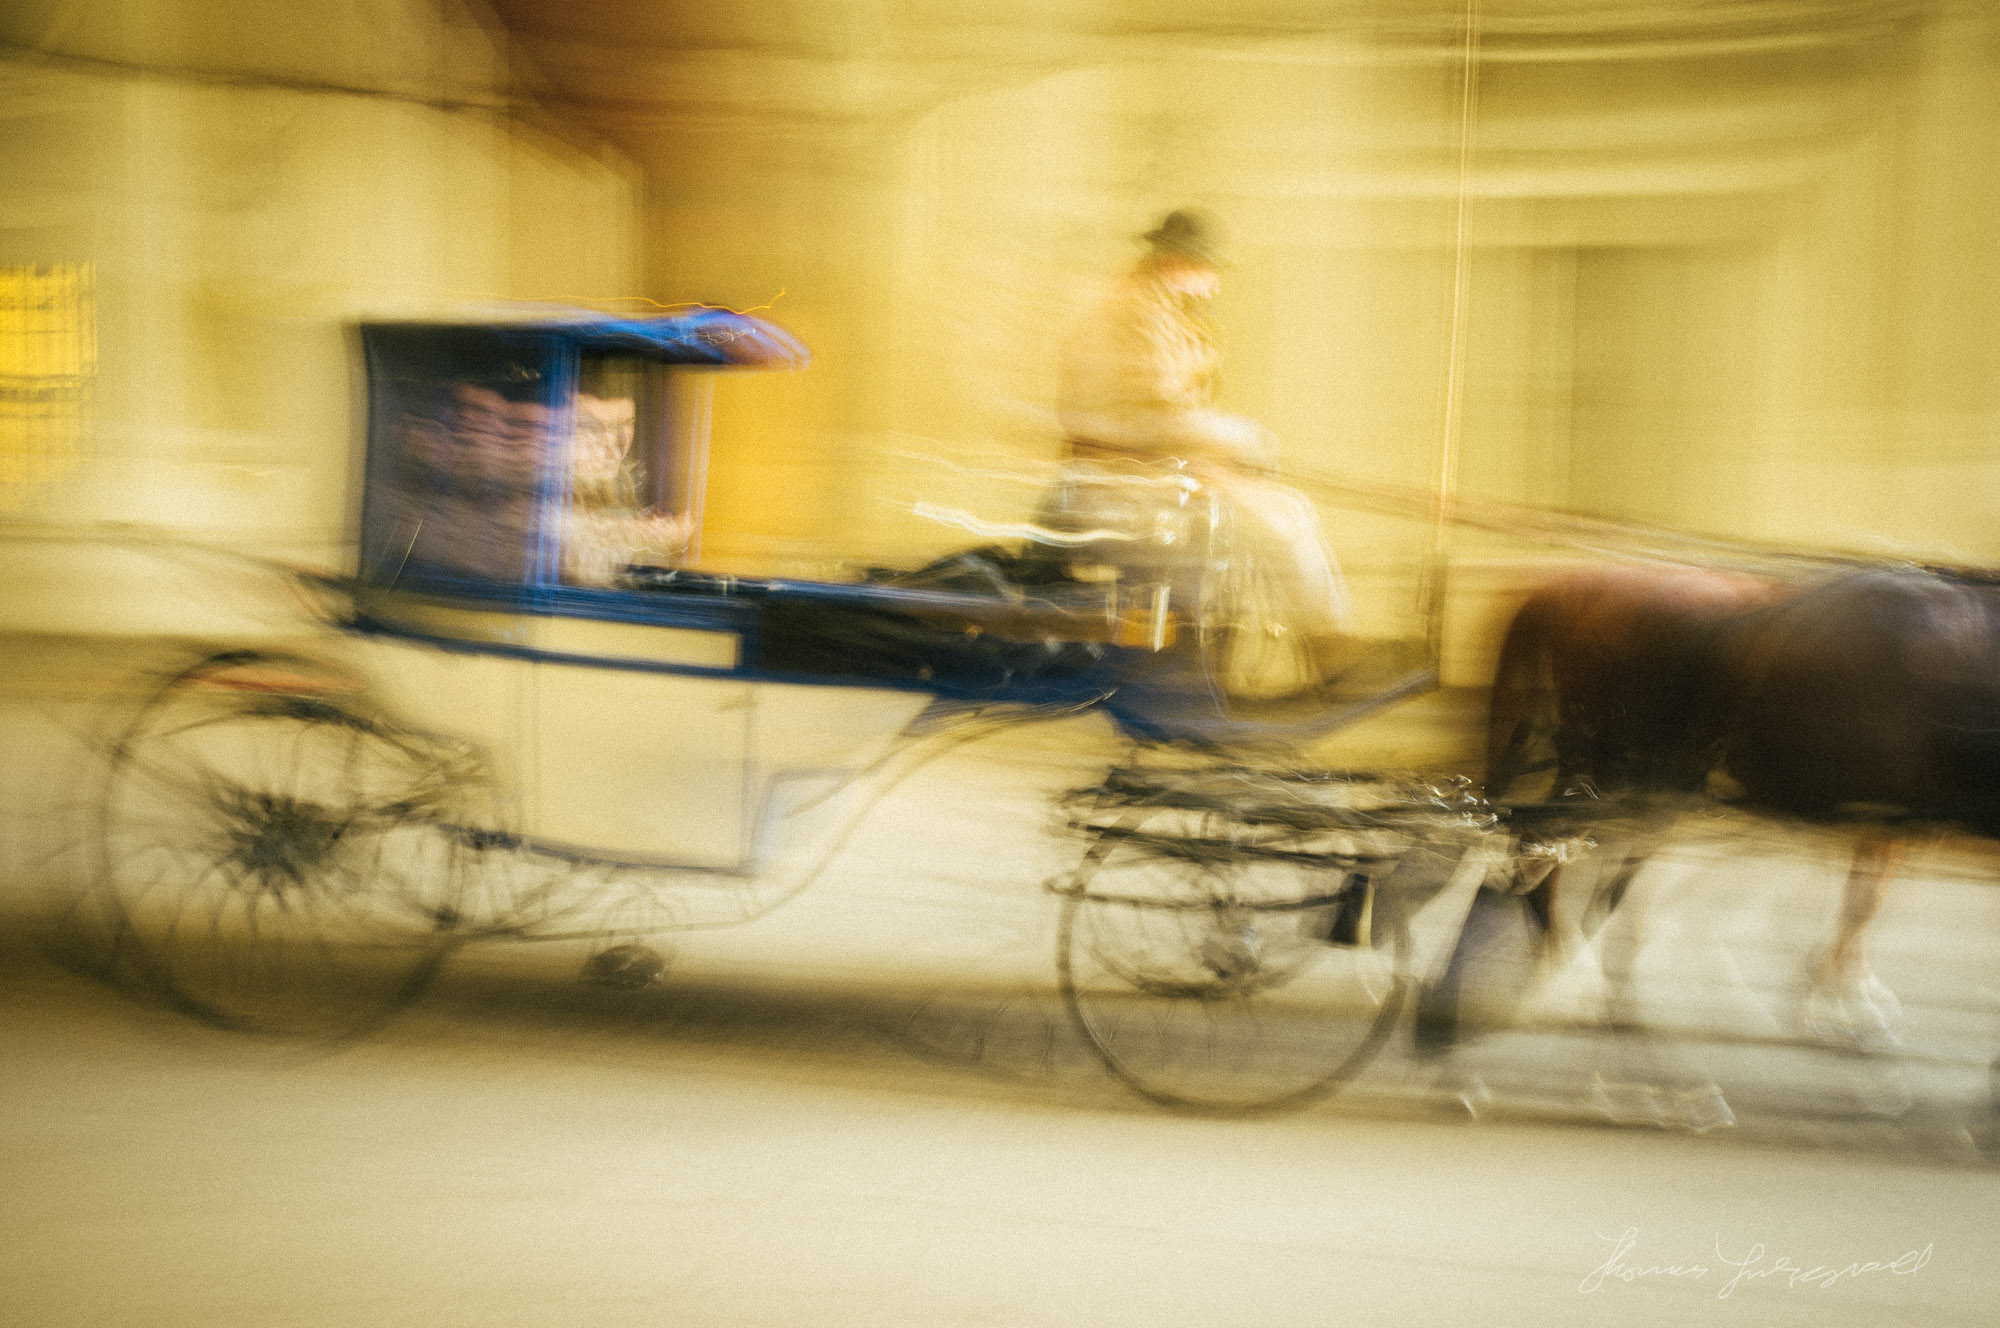 A horse and Cart in Motion, Vienna, Fujifilm X100